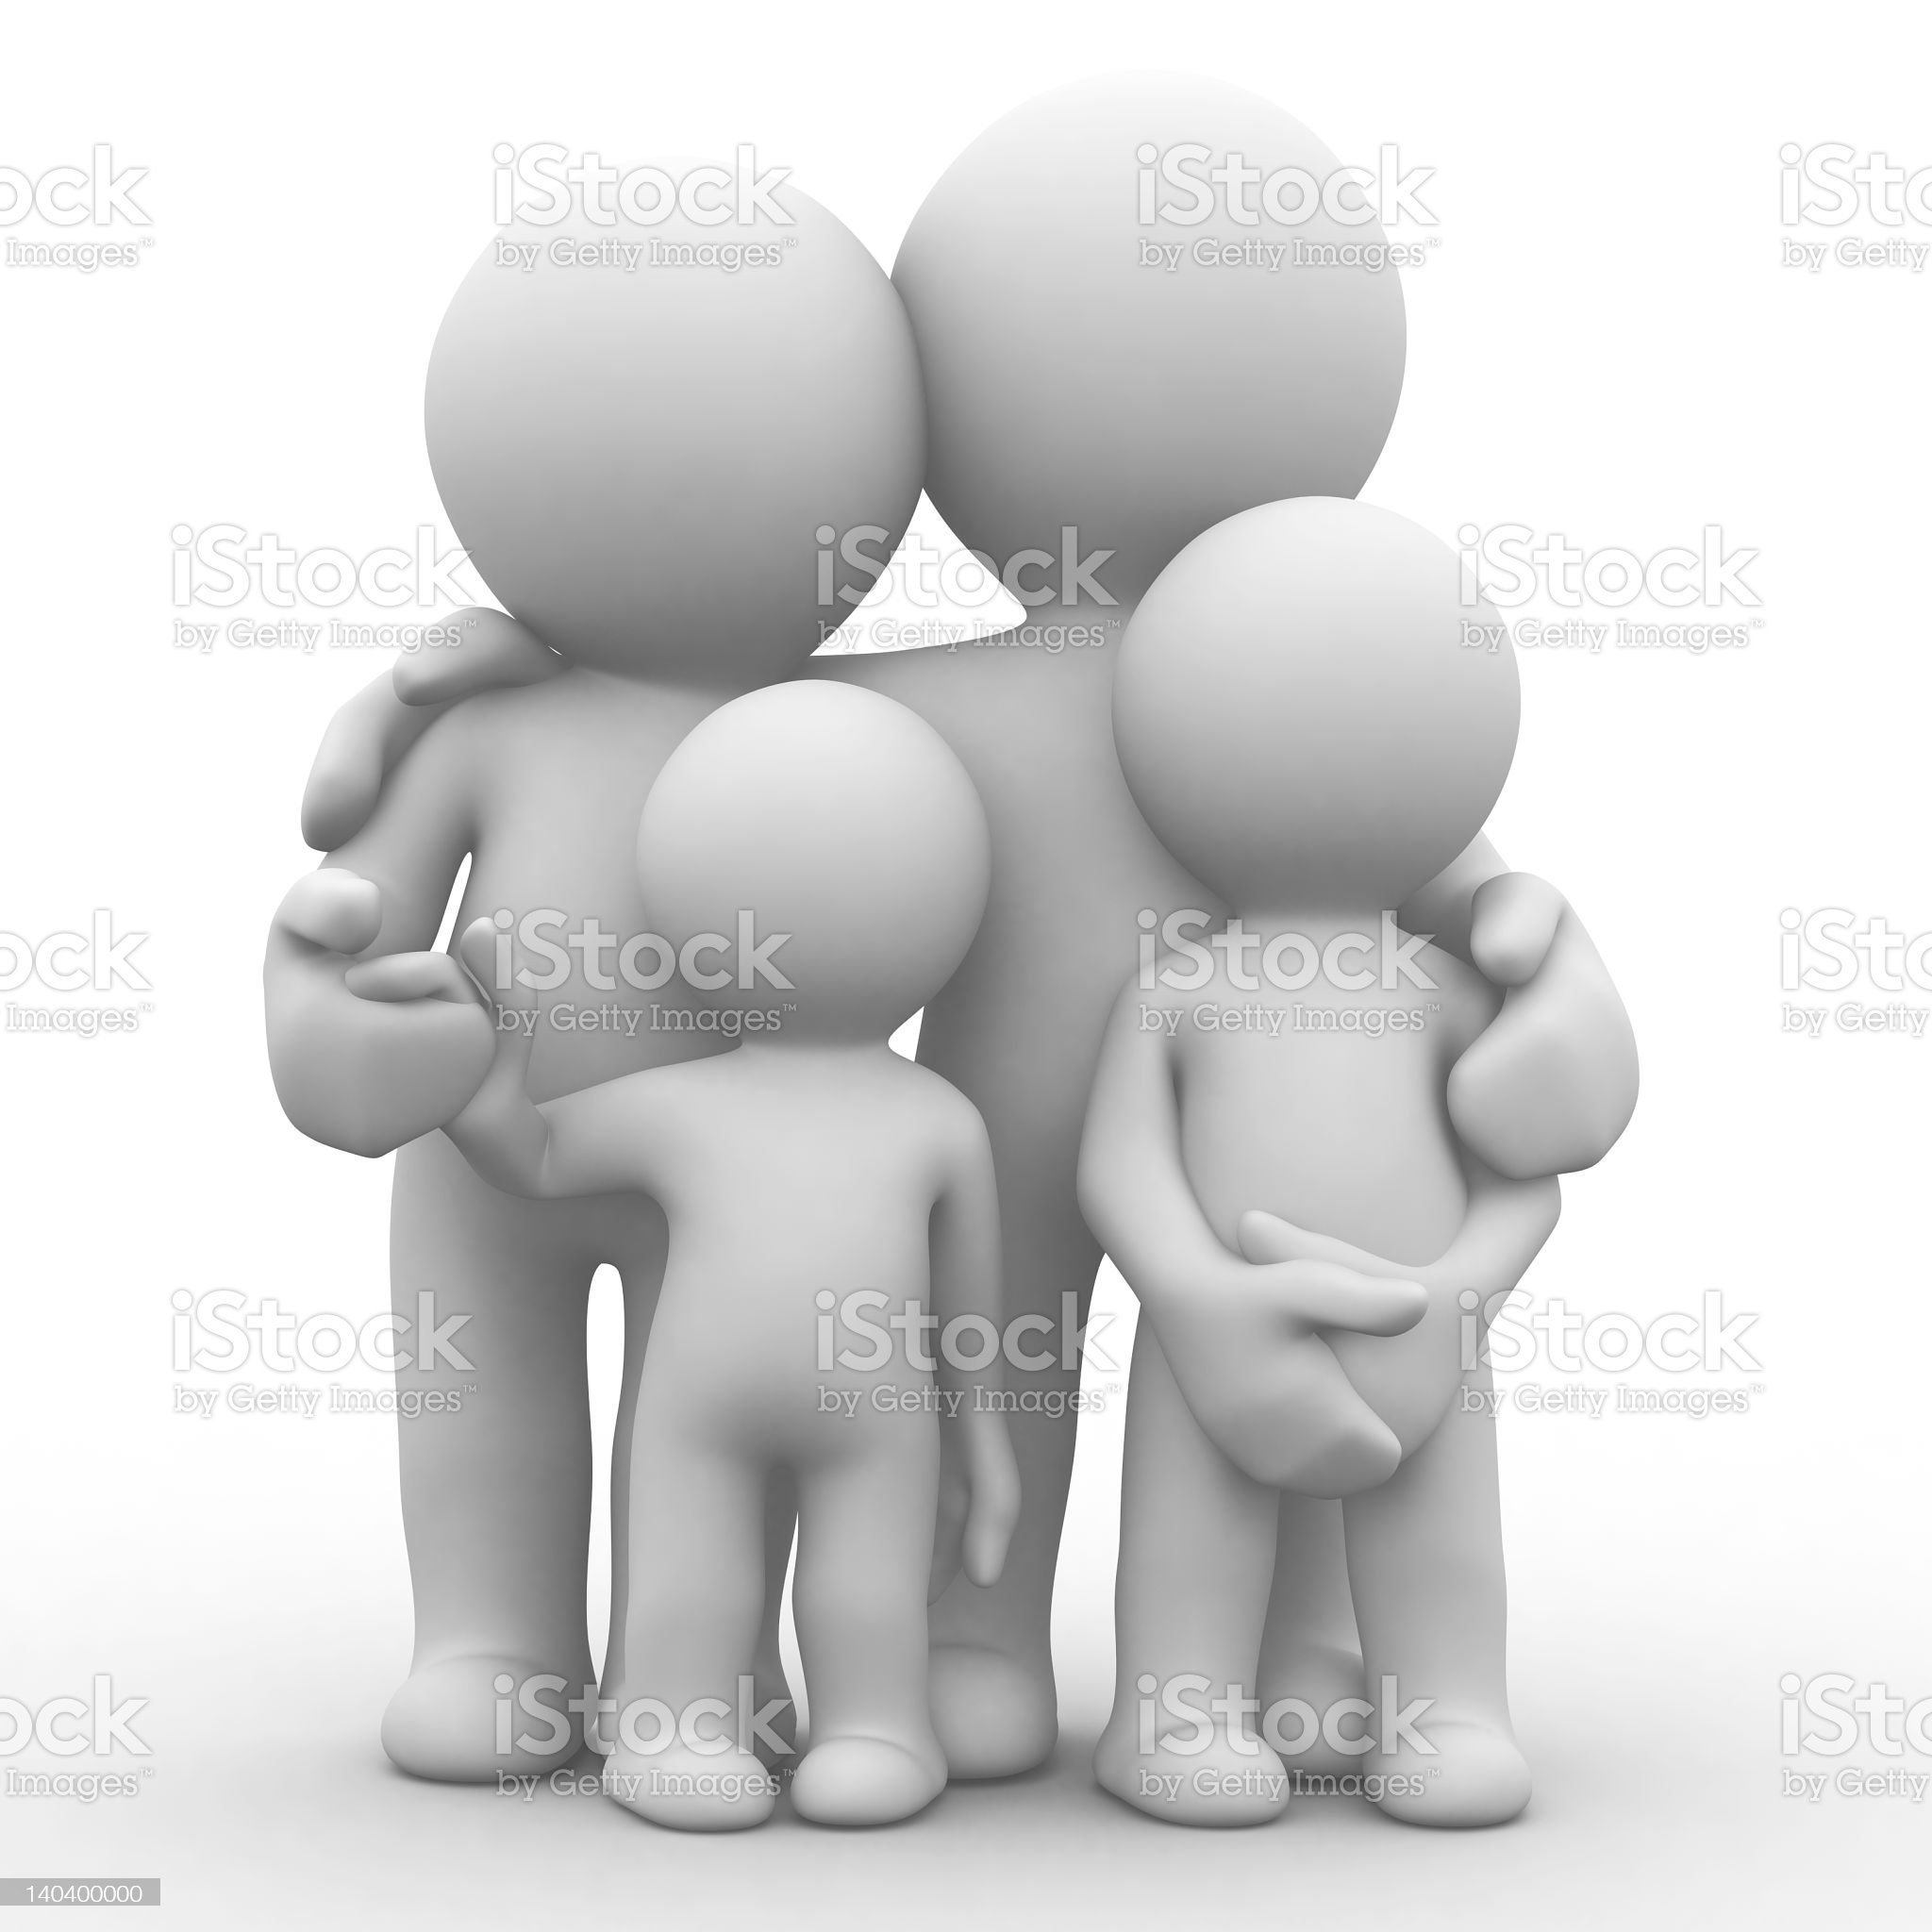 Abstract mockup of family figurines royalty-free stock photo